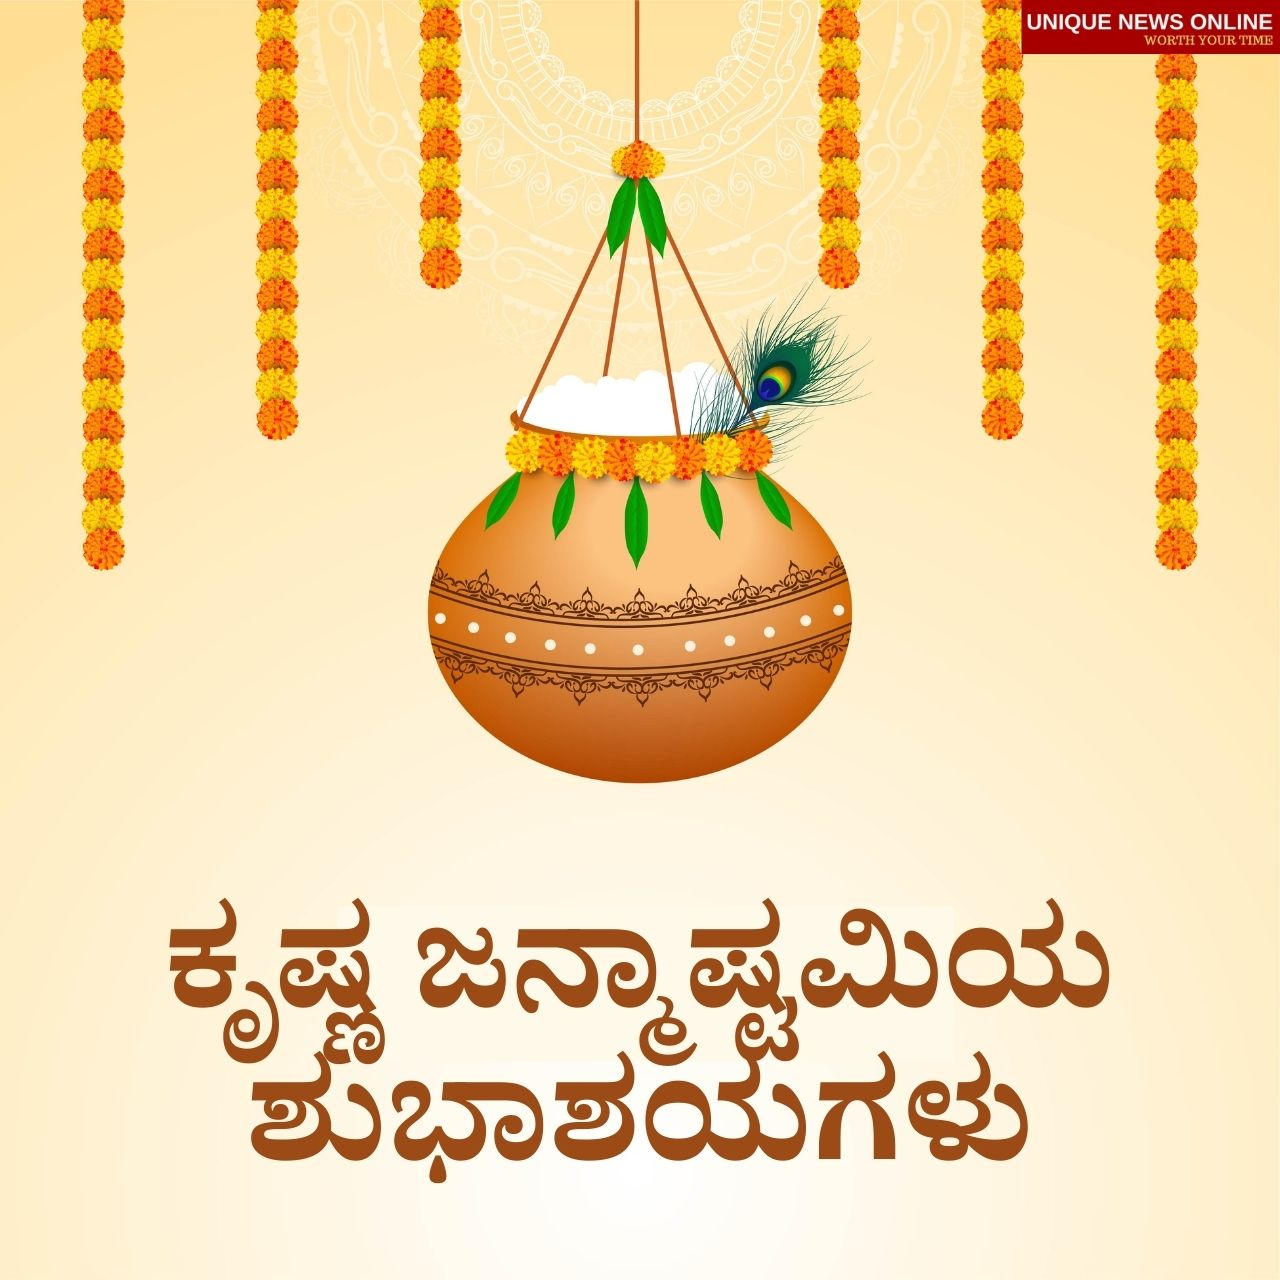 Happy Krishna Janmashtami 2021 Kannada Wishes, Messages, Quotes, HD Images, Messages, Greetings, Facebook, and WhatsApp Status